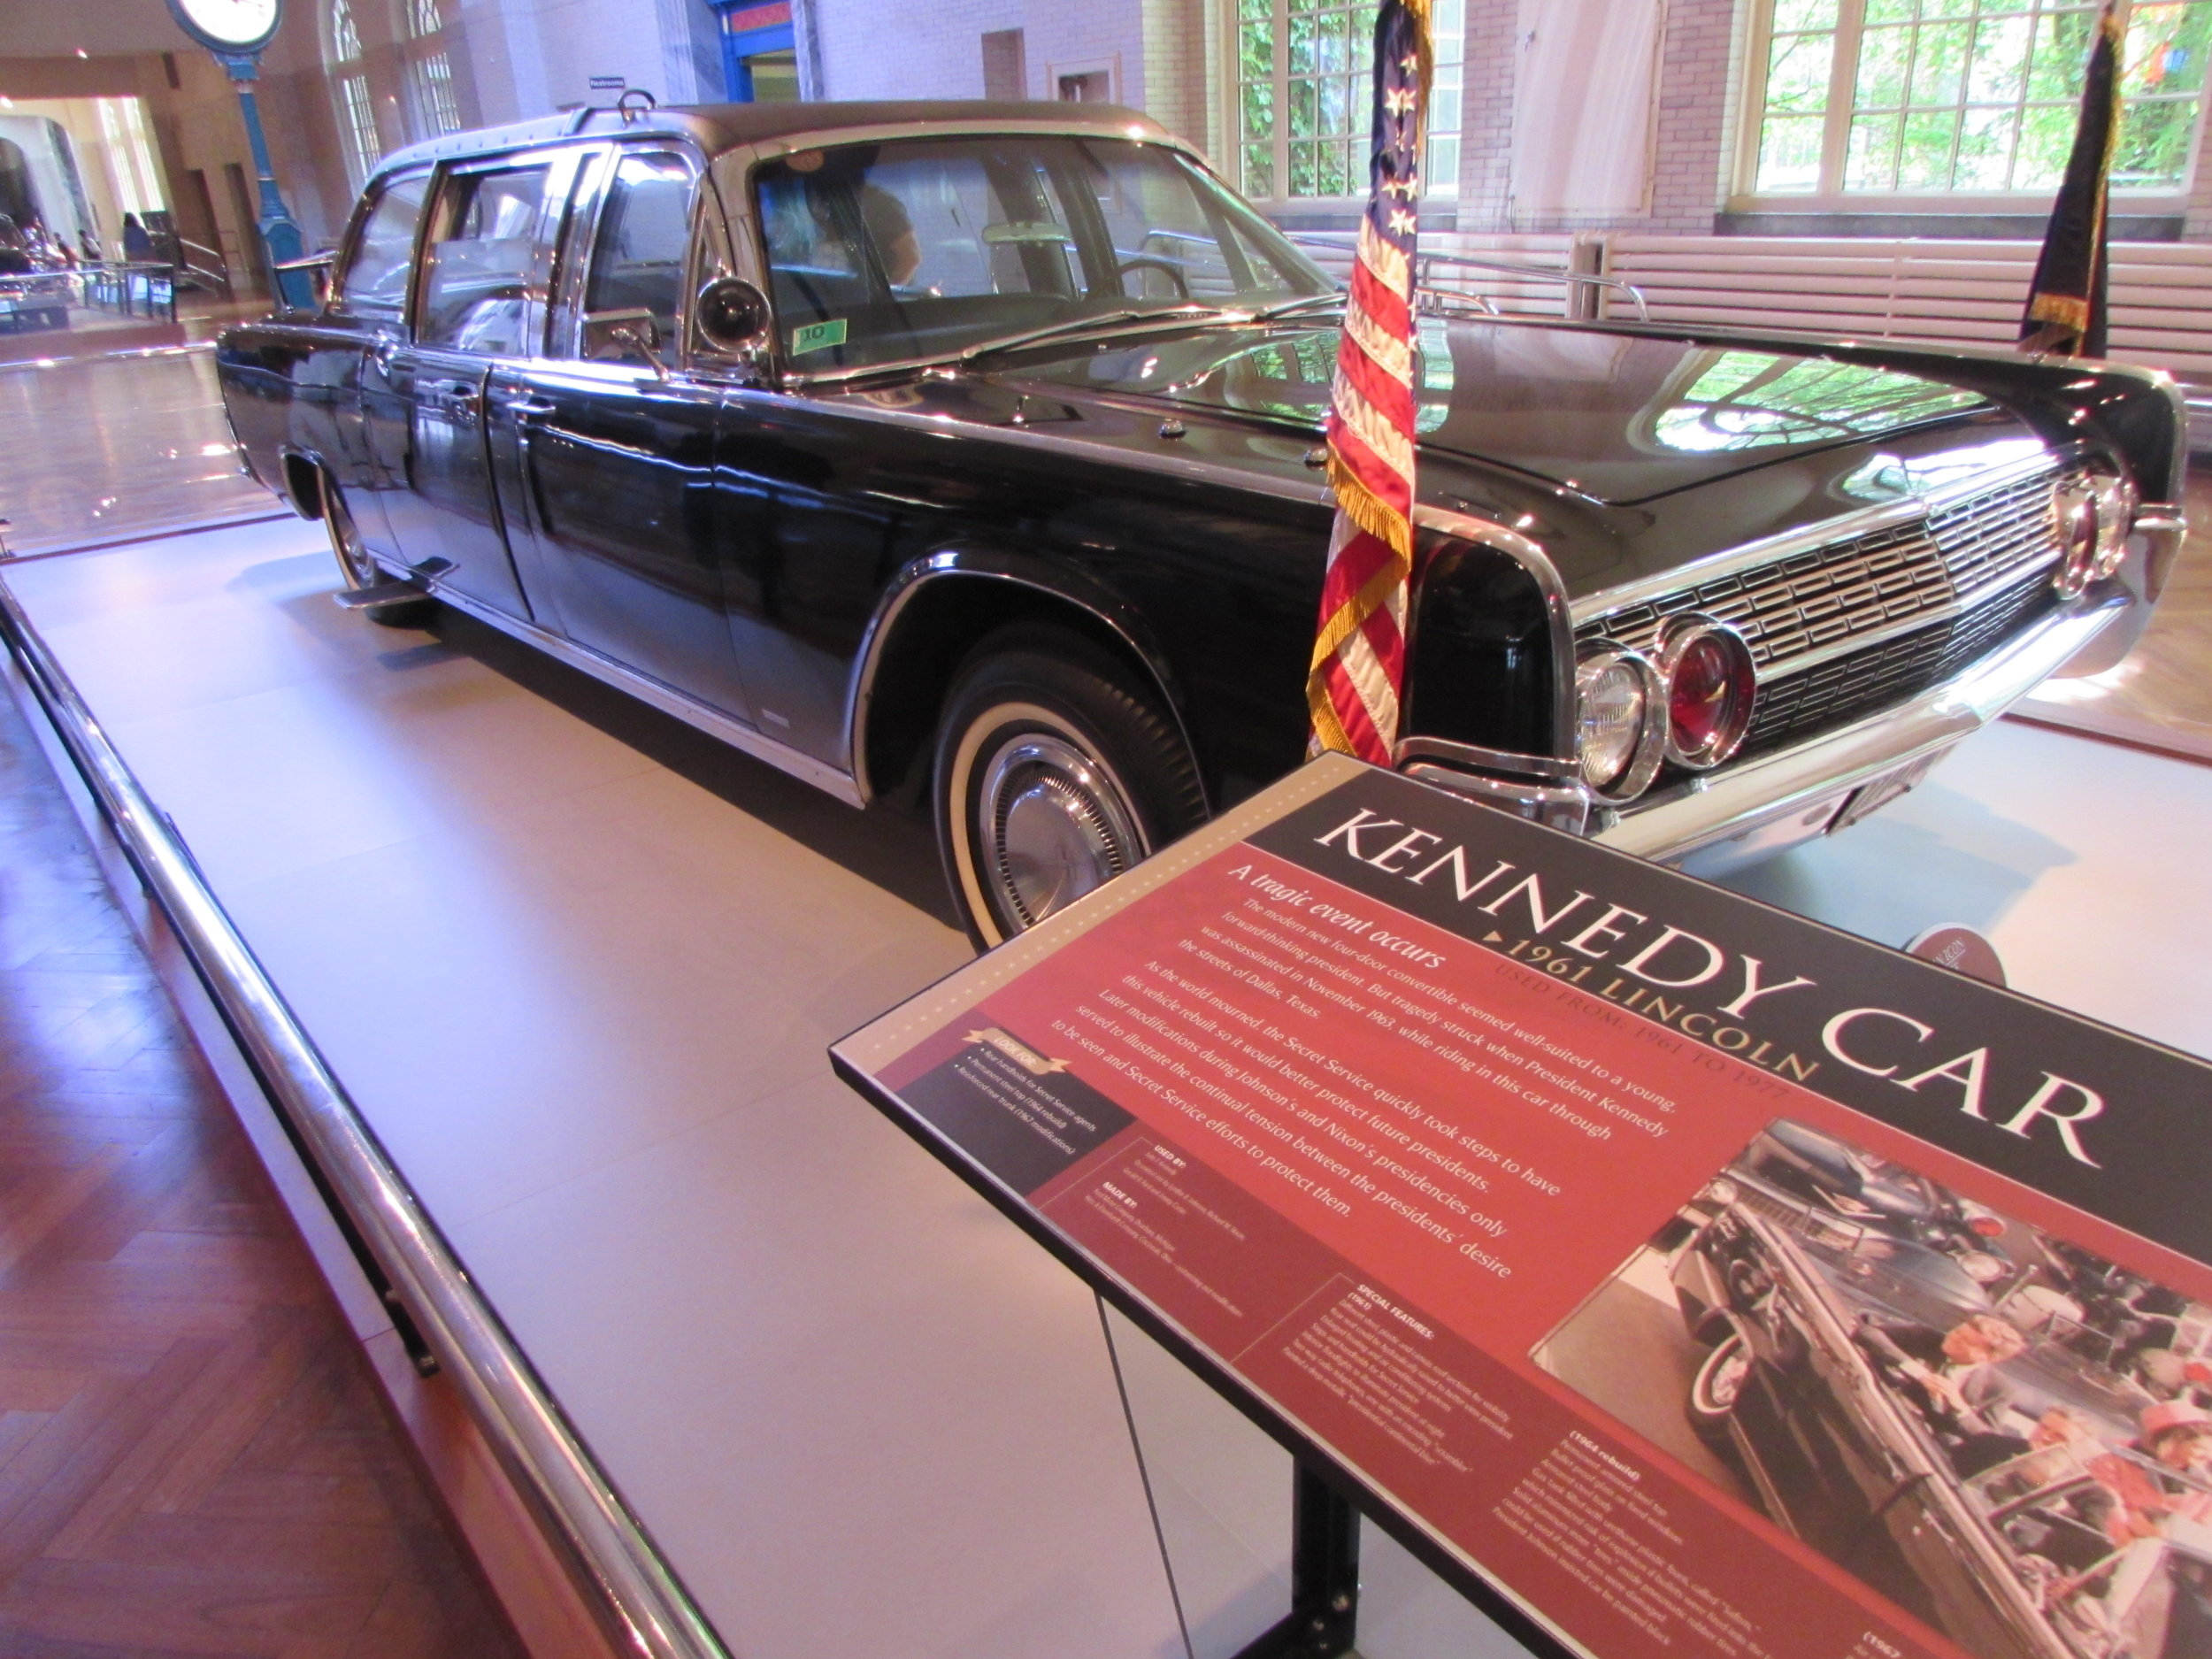 From Dallas 1963. The Kennedy Car